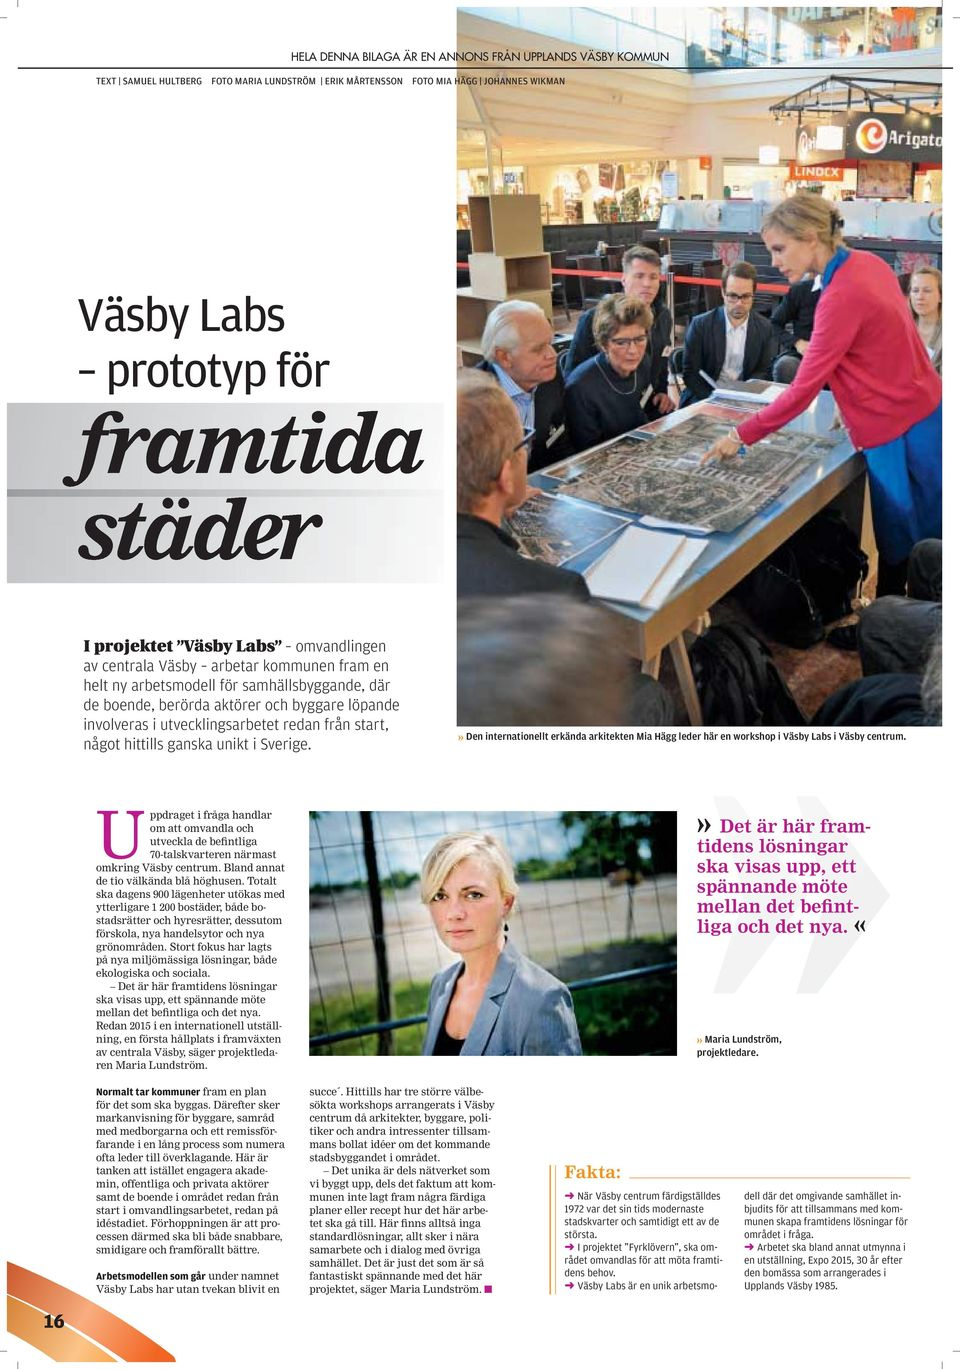 » Den internationellt erkända arkitekten Mia Hägg leder här en workshop i Väsby Labs i Väsby centrum.